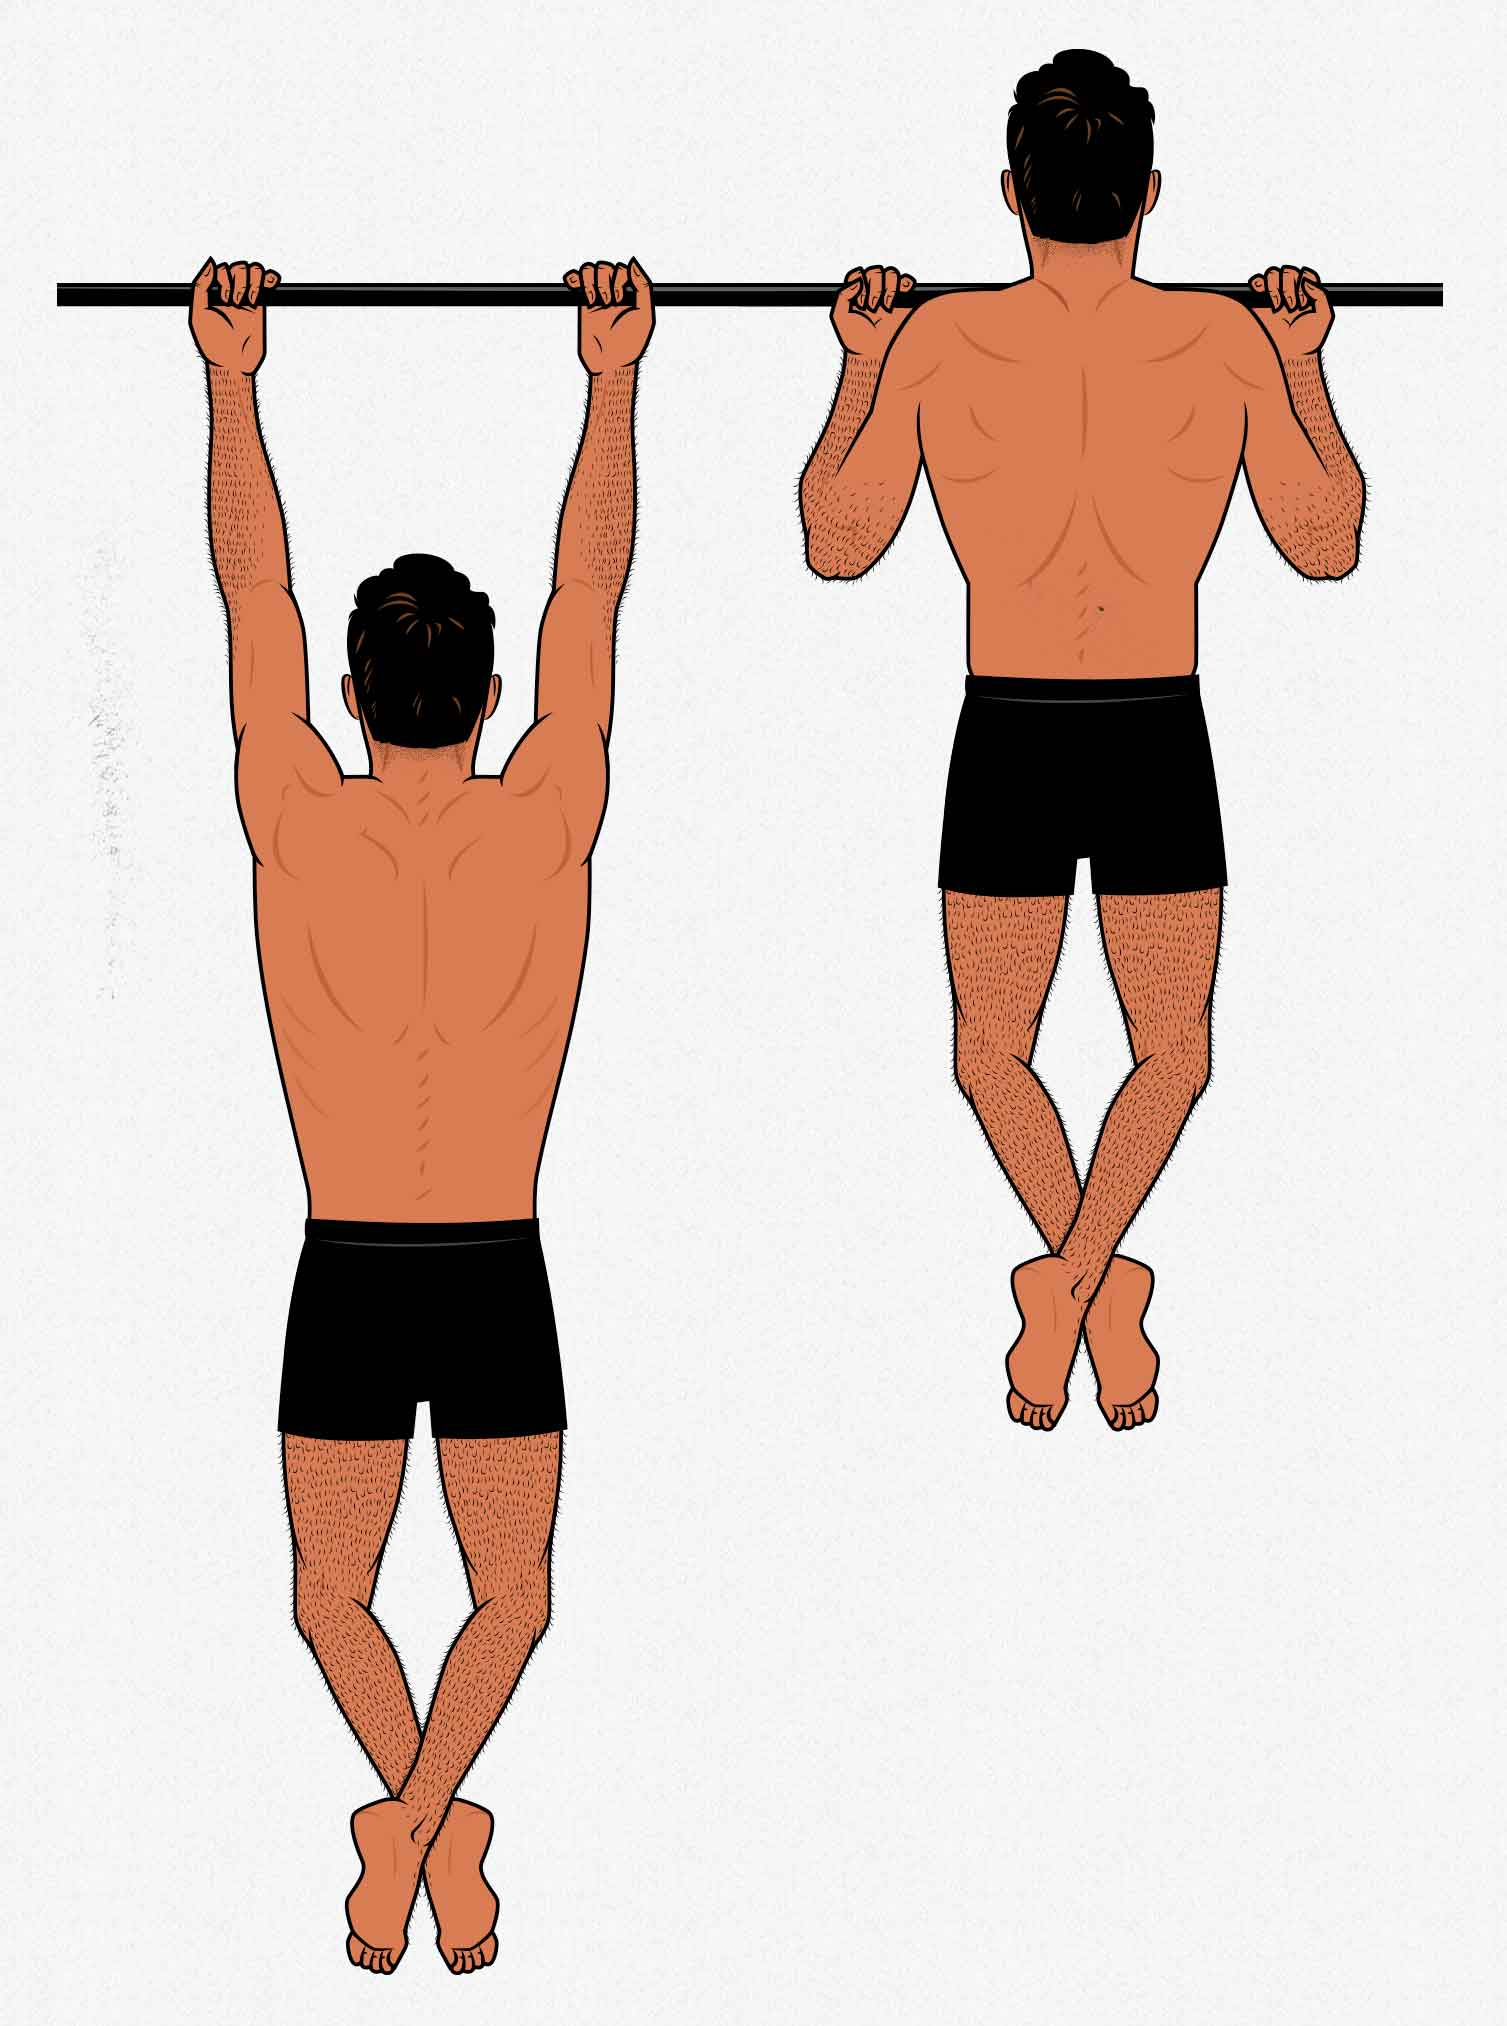 Illustration showing how to do chin-ups to build muscle in the upper back and biceps.